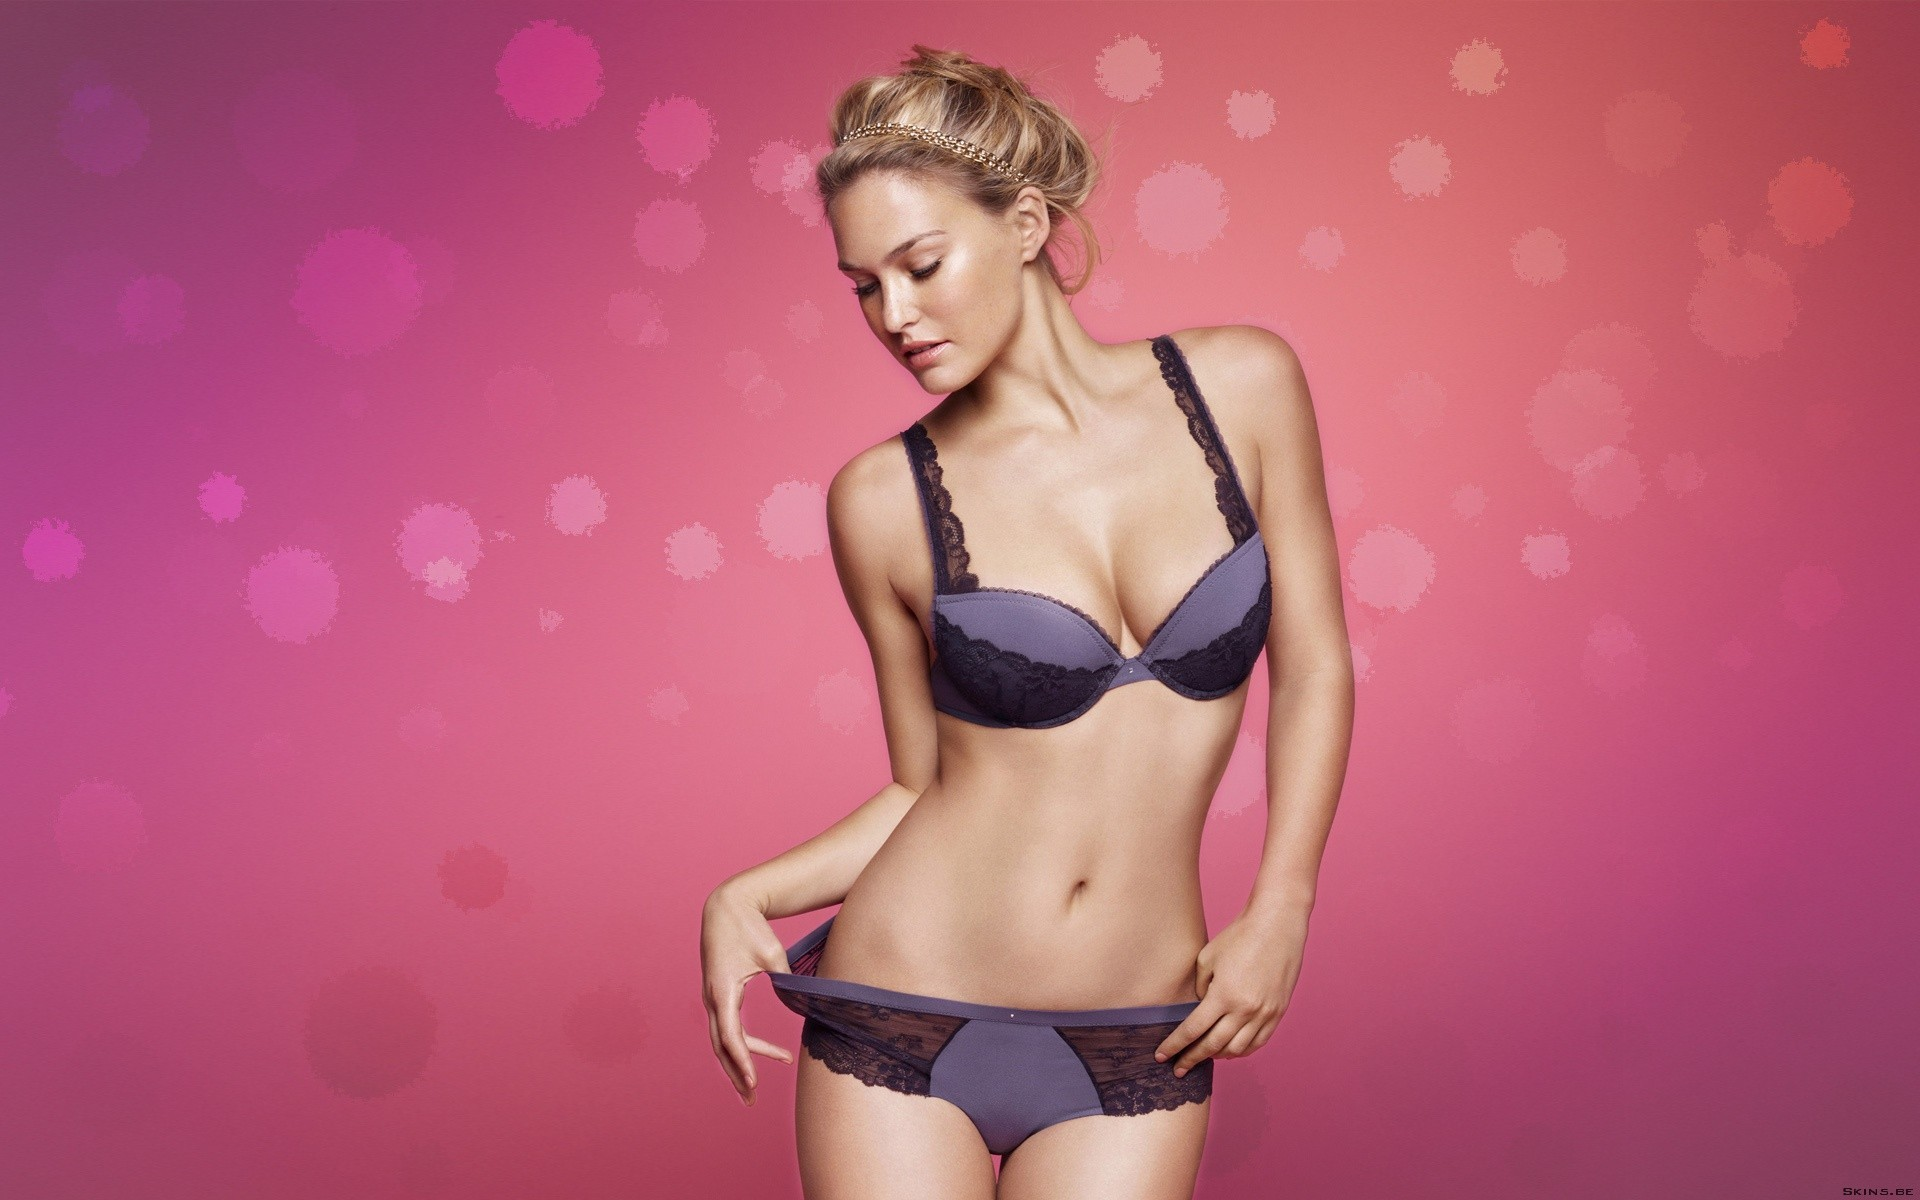 woman blondes lingerie bar refaeli HD Wallpaper